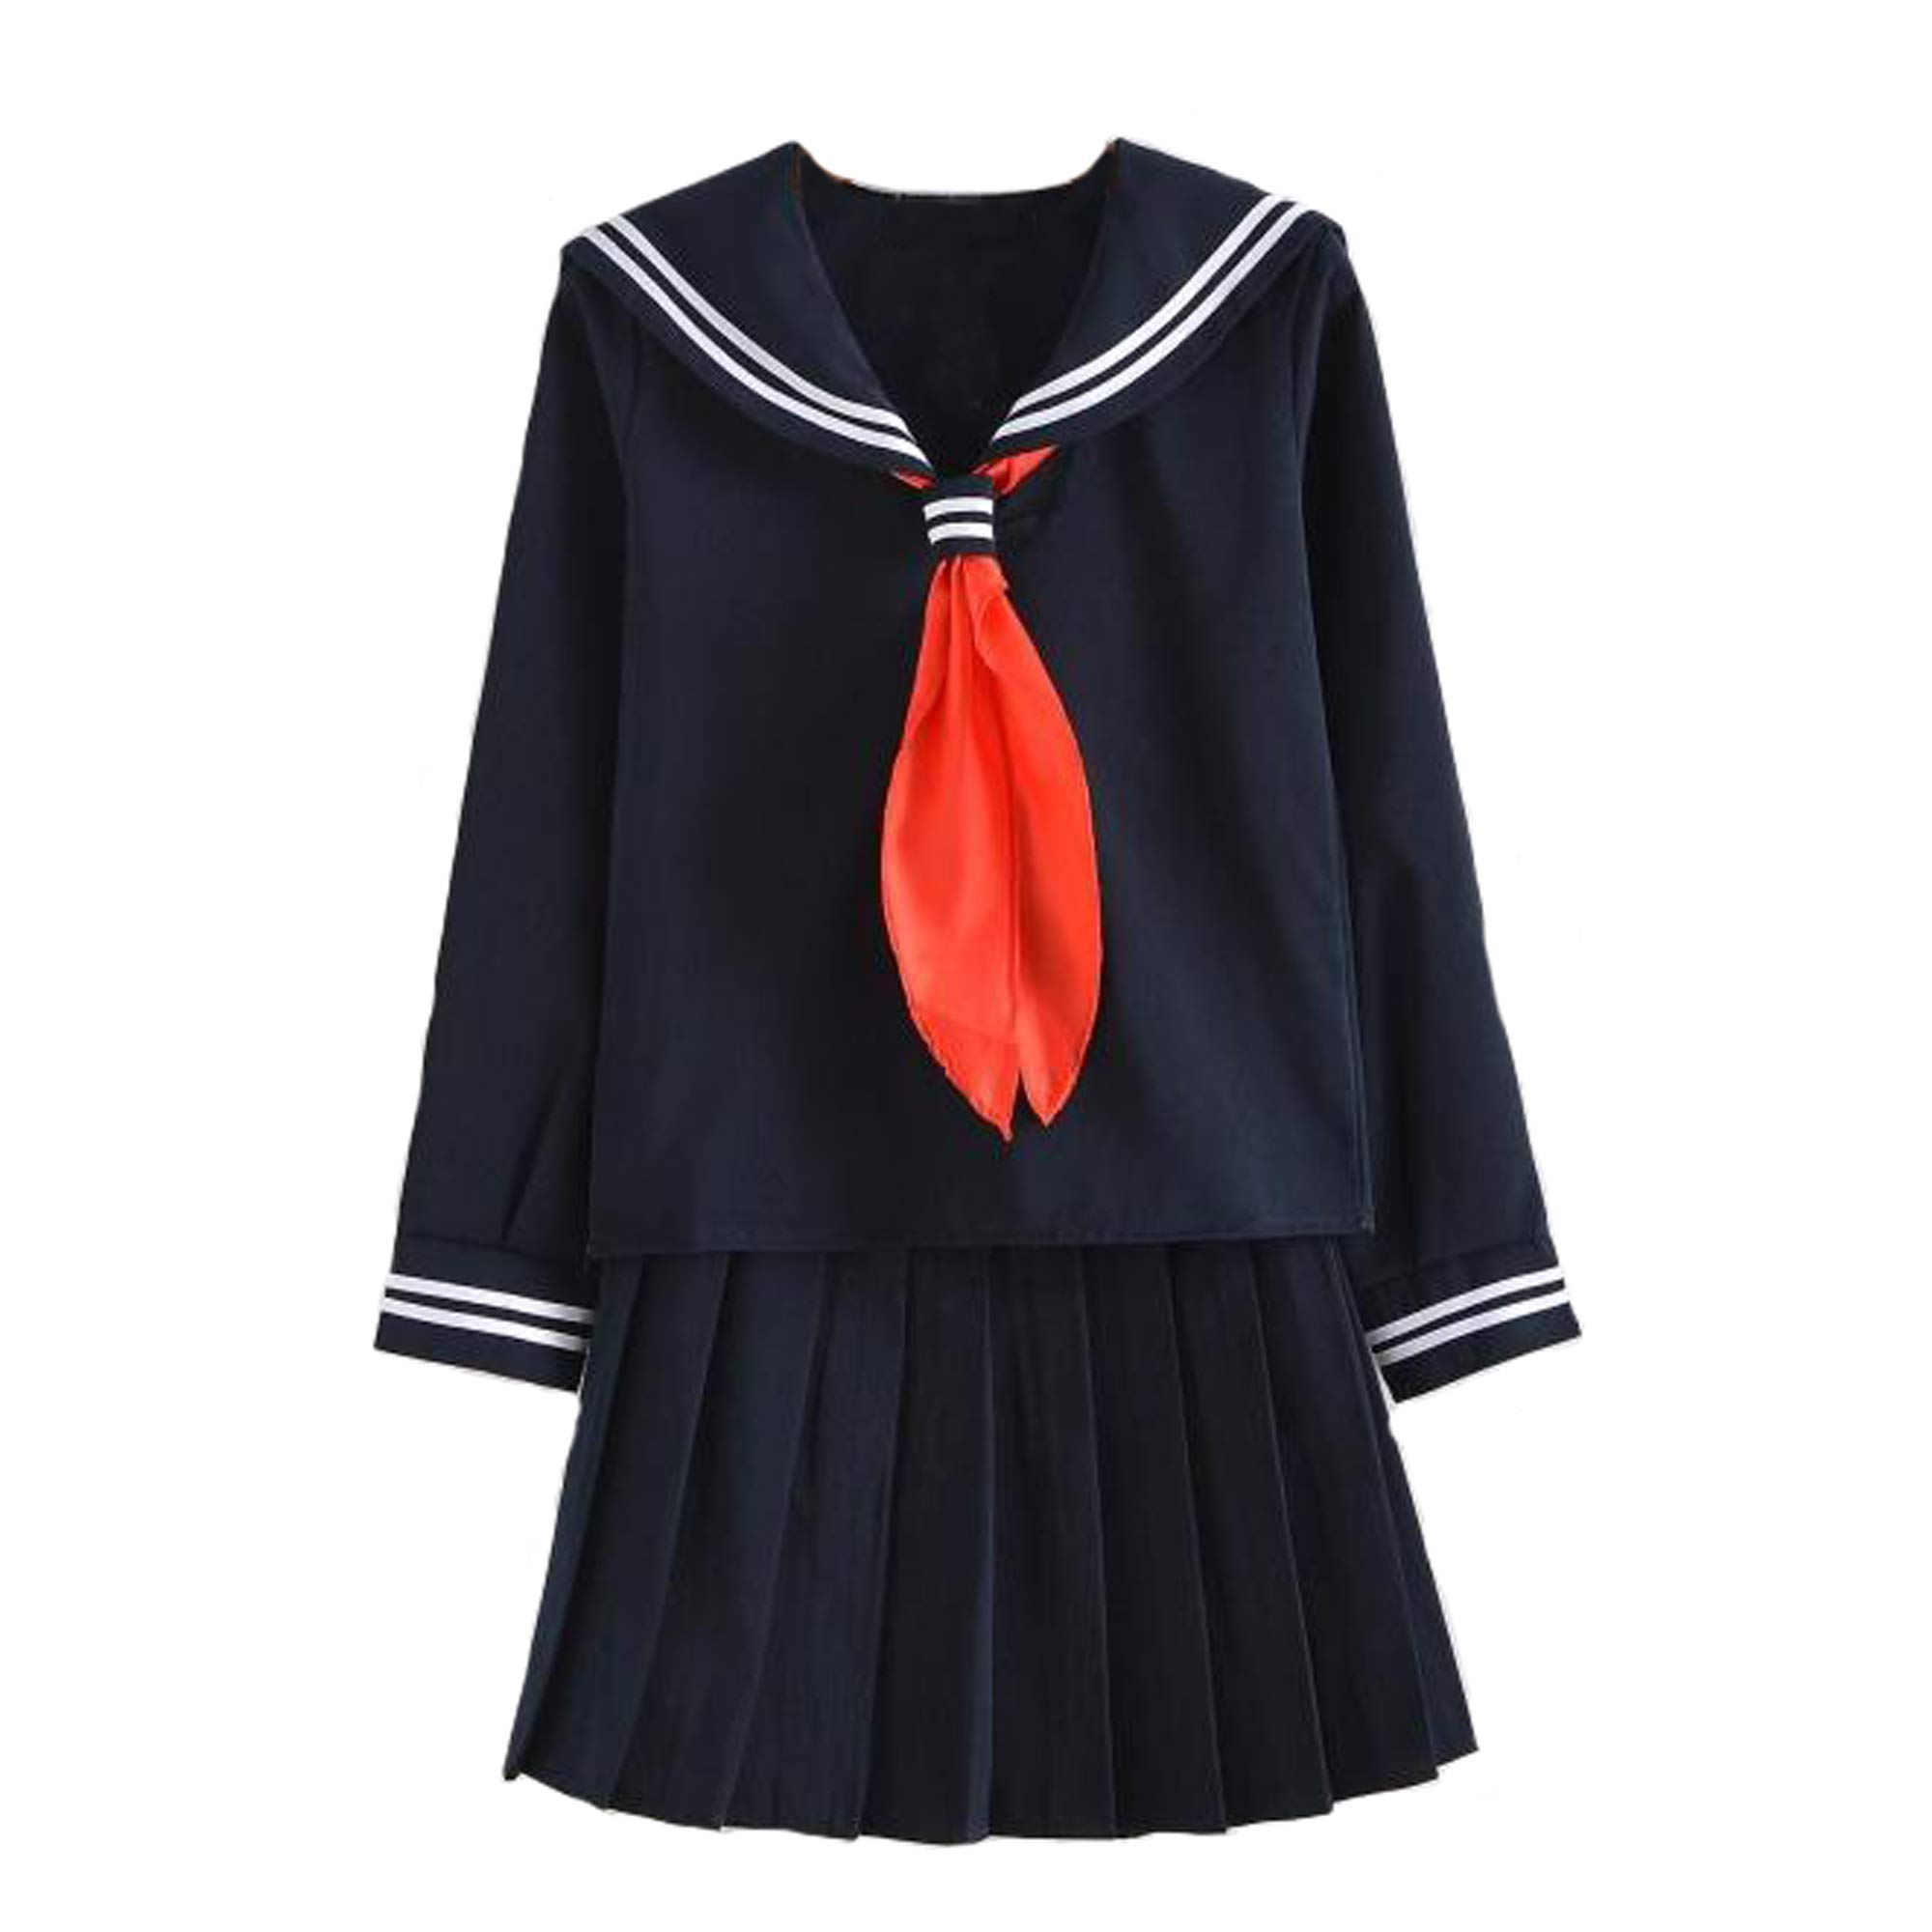 Japanese school uniform girls school class navy sailor school uniforms Hell Girl Enma ai Anime Cosplay girls suit with Socks image